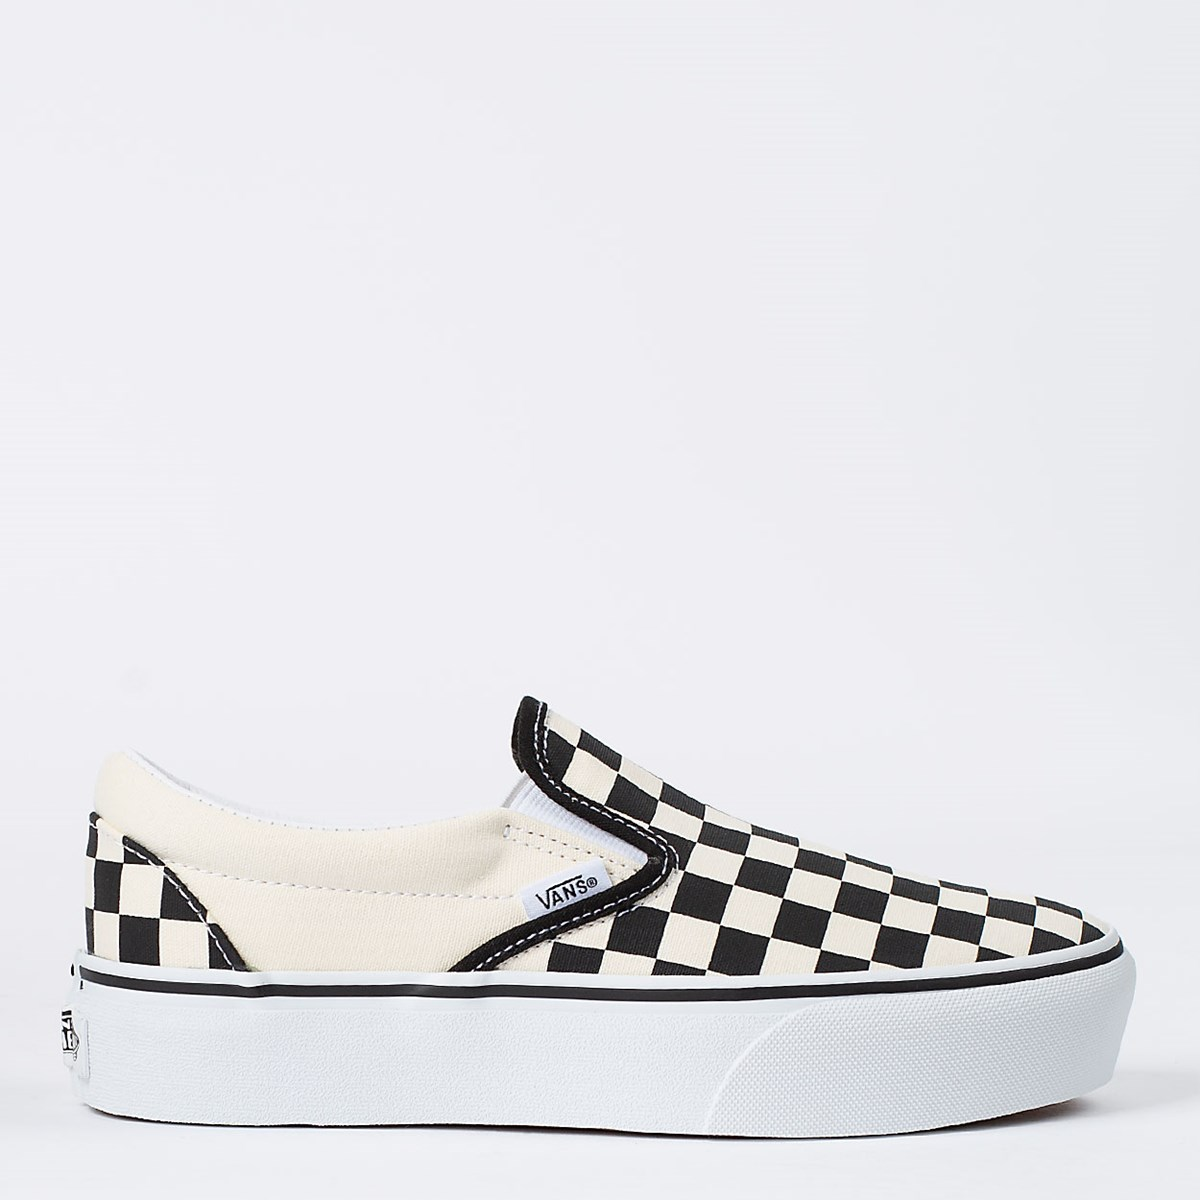 Tênis Vans Classic Slip On Platform Black White Checkerboard VN00018EBWW